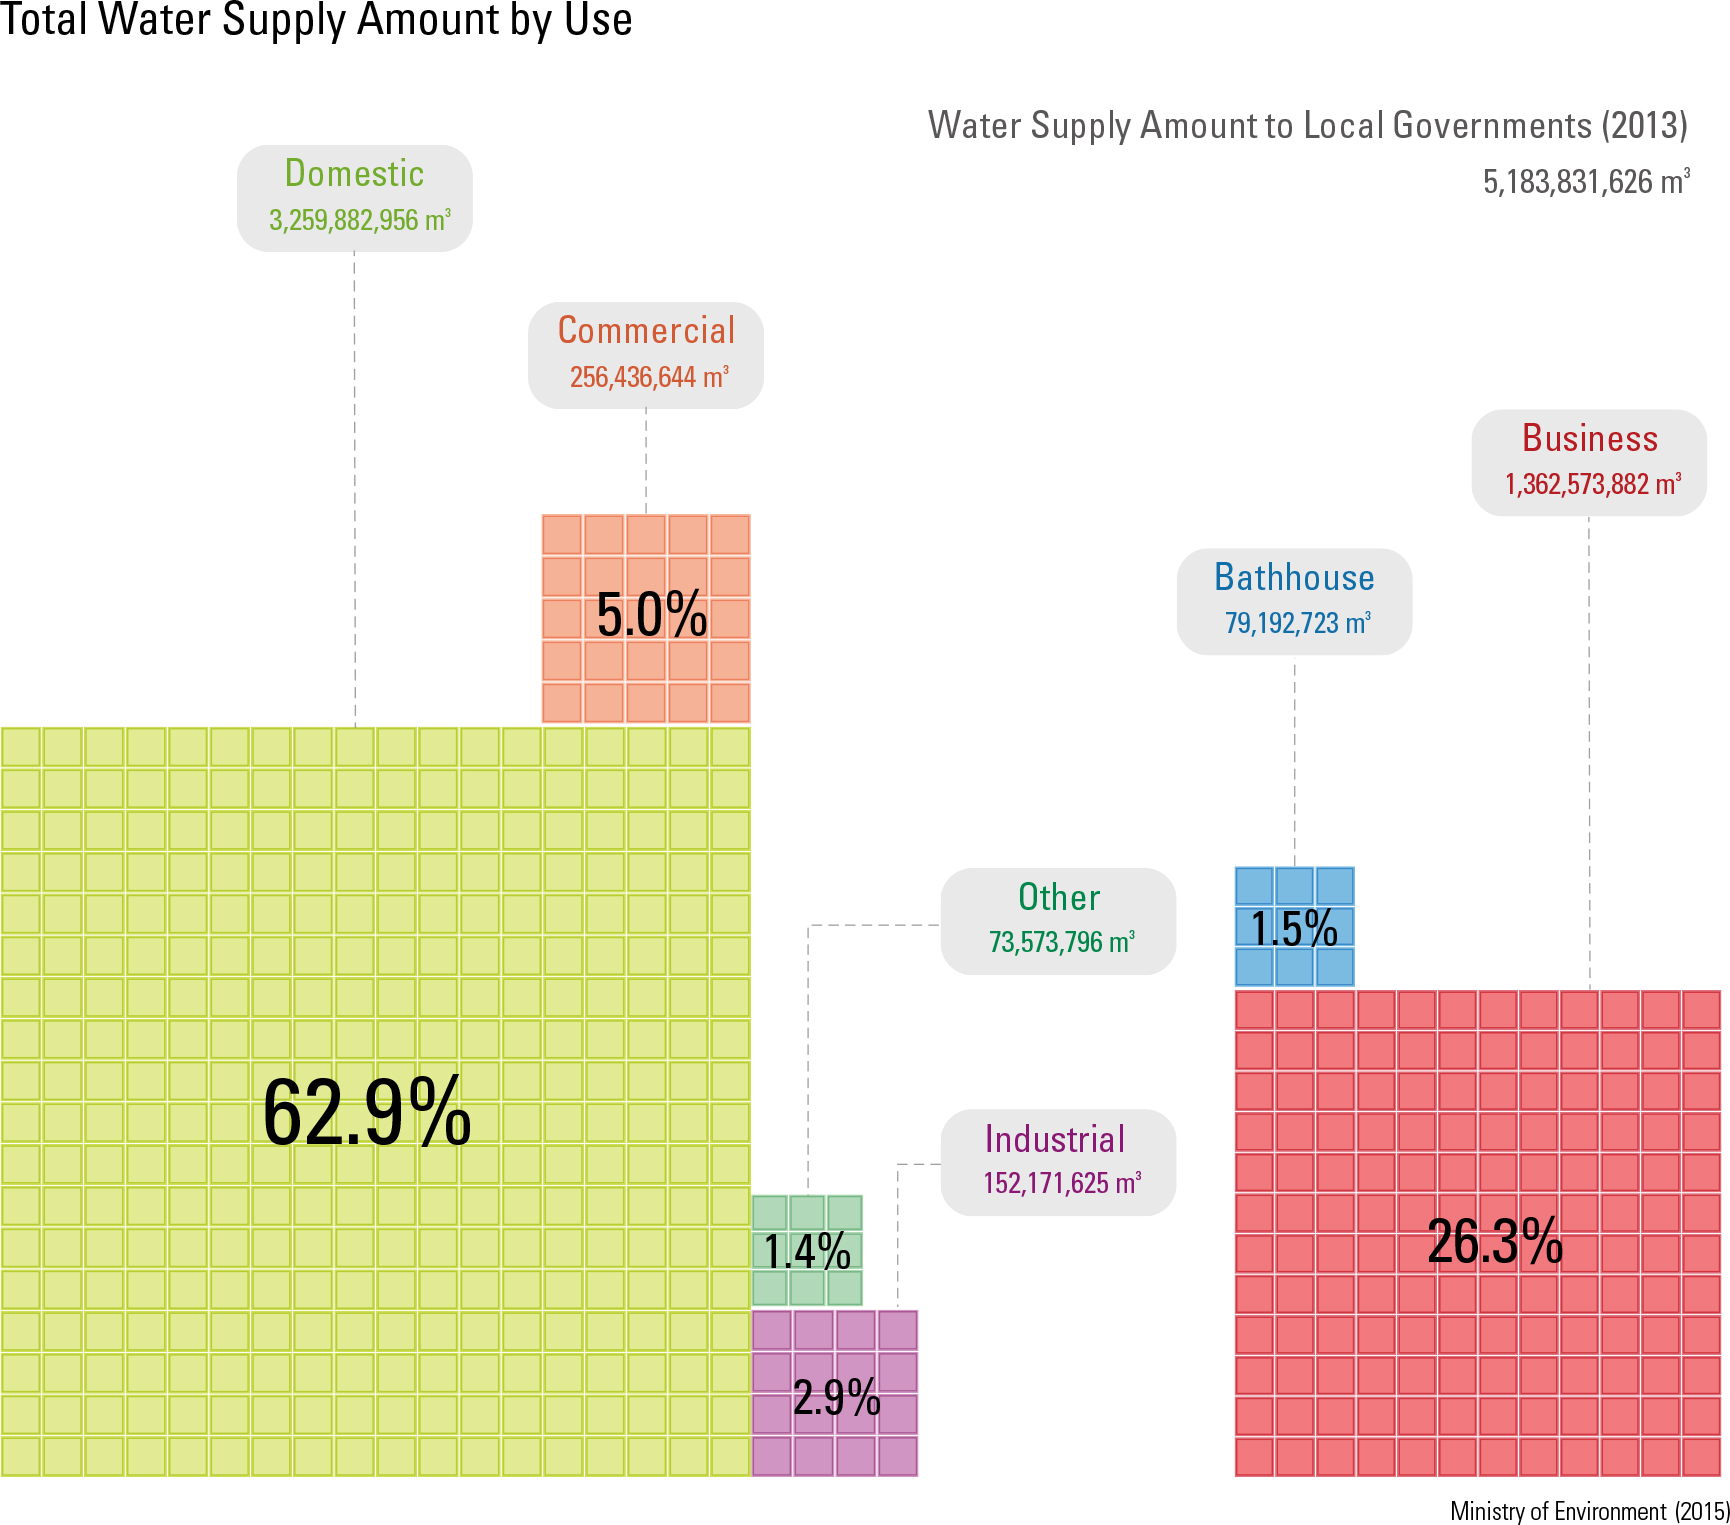 "Total Water Supply Amount by Use<p class=""oz_zoom"" zimg=""http://imagedata.cafe24.com/us_3/us3_19-2_2.jpg""><span style=""font-family:Nanum Myeongjo;""><span style=""font-size:18px;""><span class=""label label-danger"">UPDATE DATA</span></span></p>"